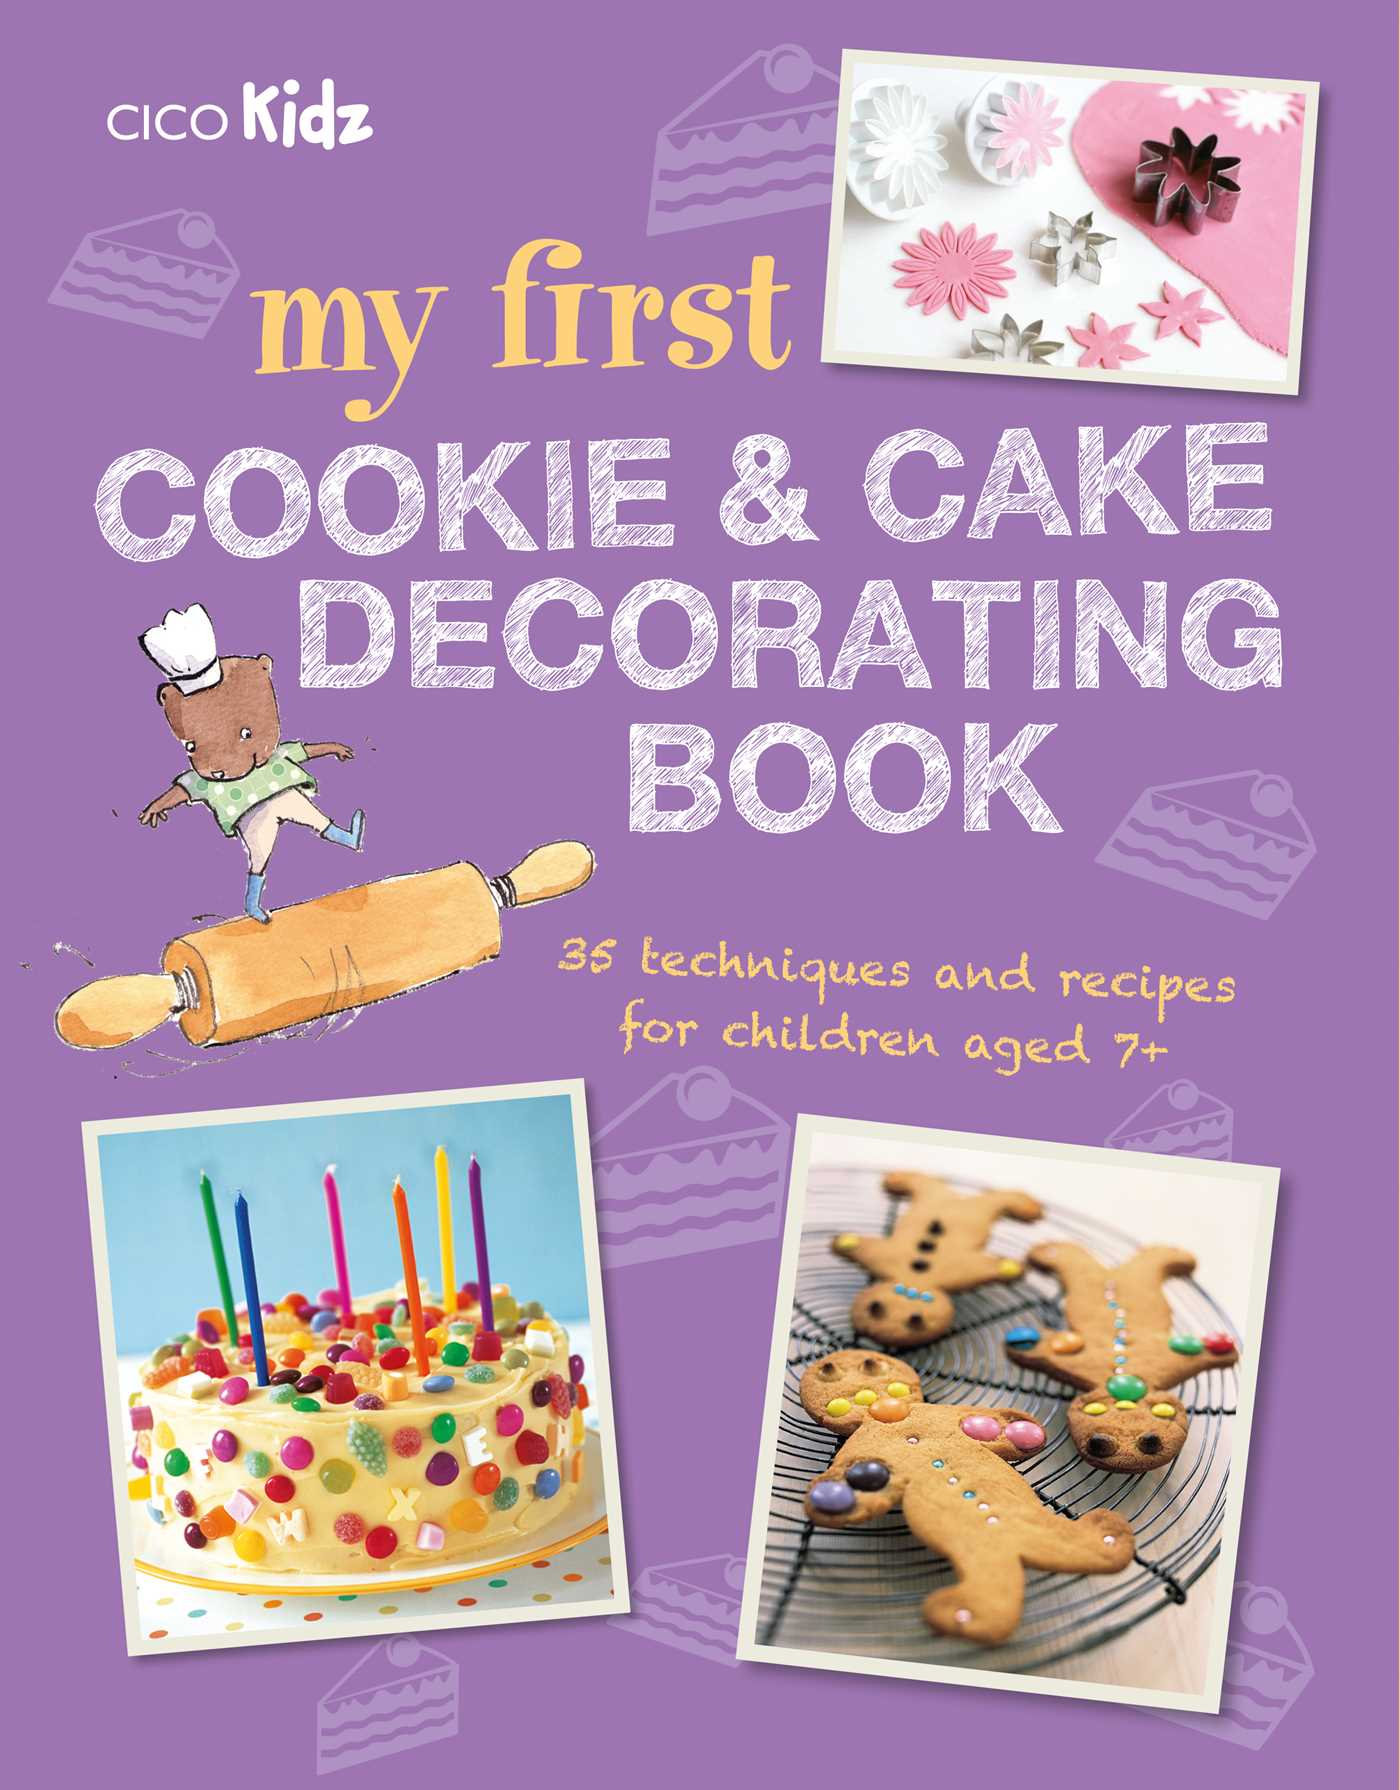 My first cookie and cake decorating book 9781782494928 hr